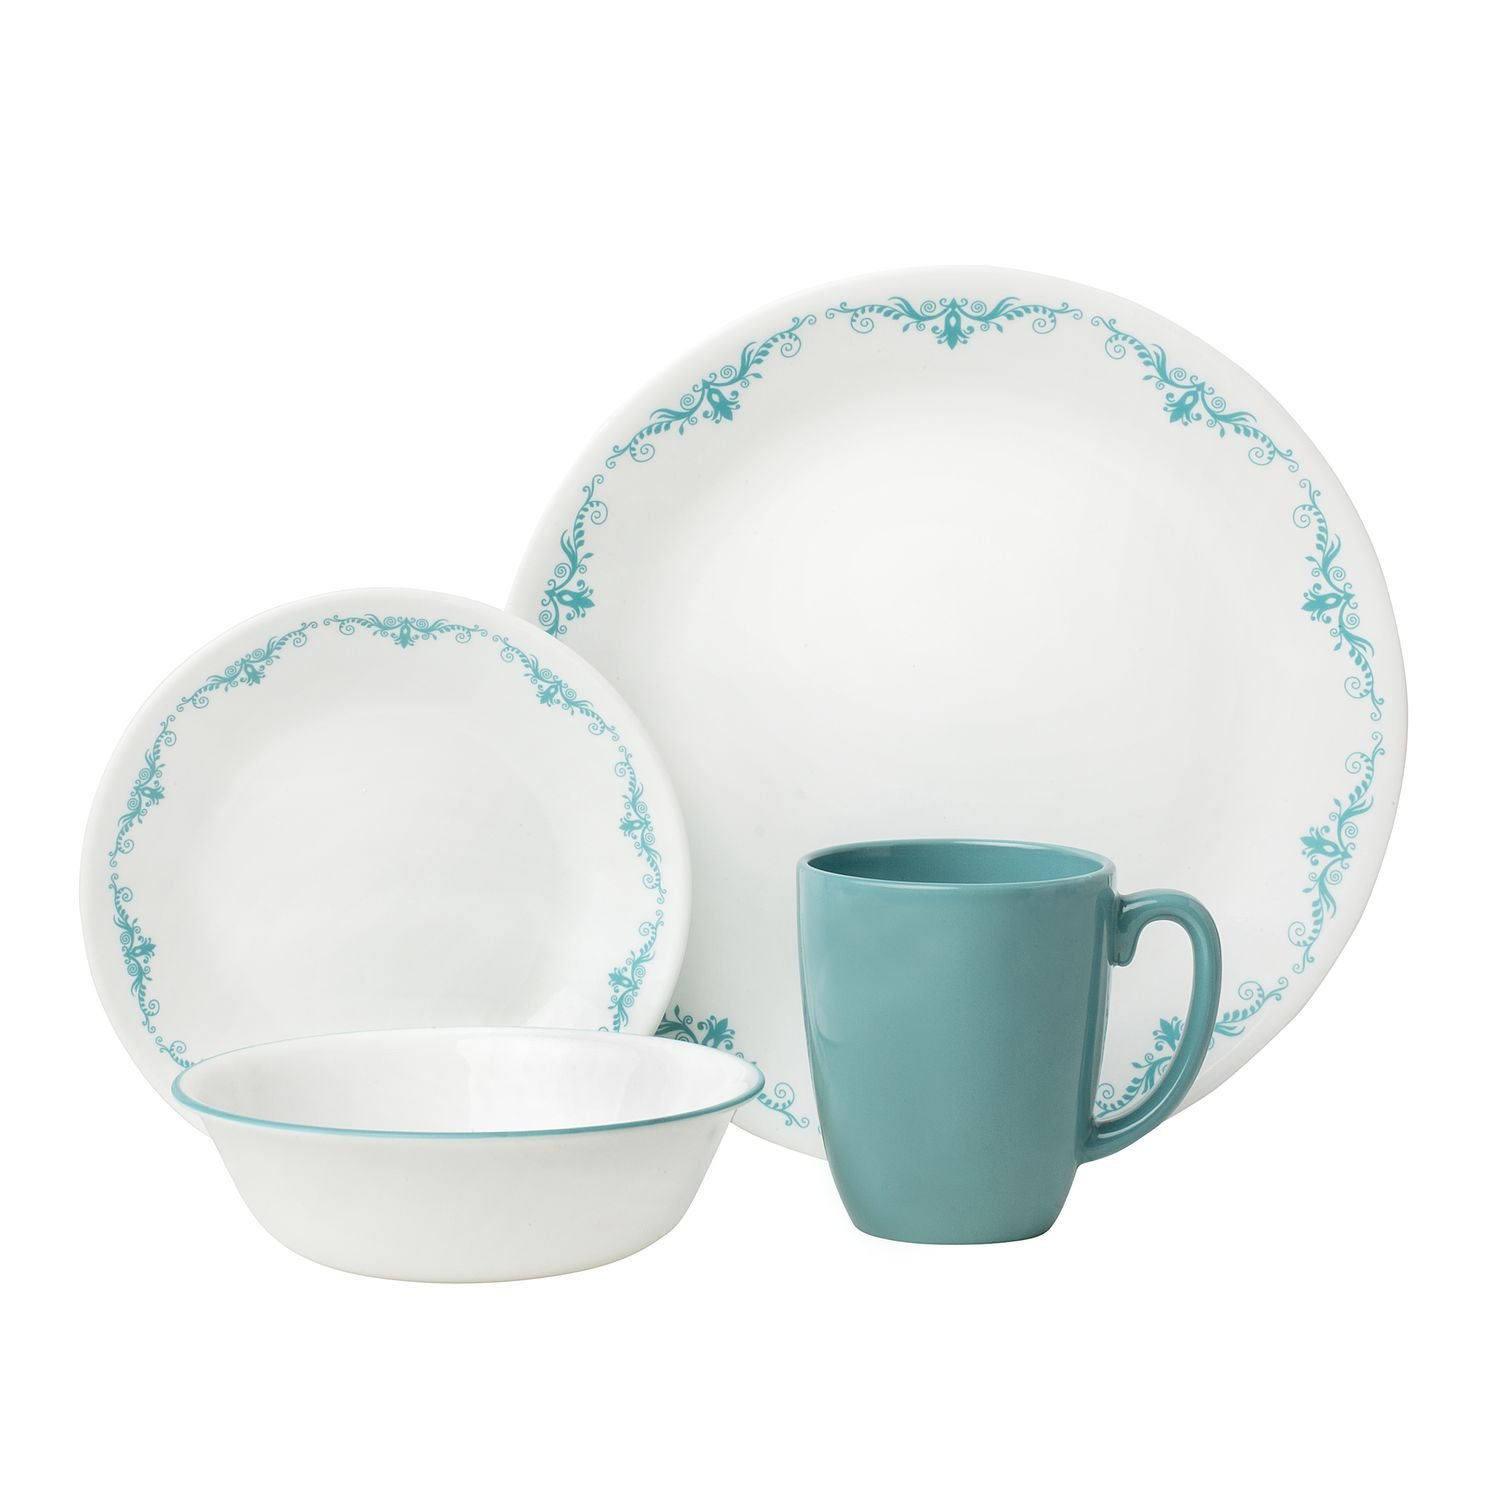 Corelle Garden Lace Chip and Break Resistant Dinner Set, Glass, Turquoise, Set of 16 World Kitchen 3385